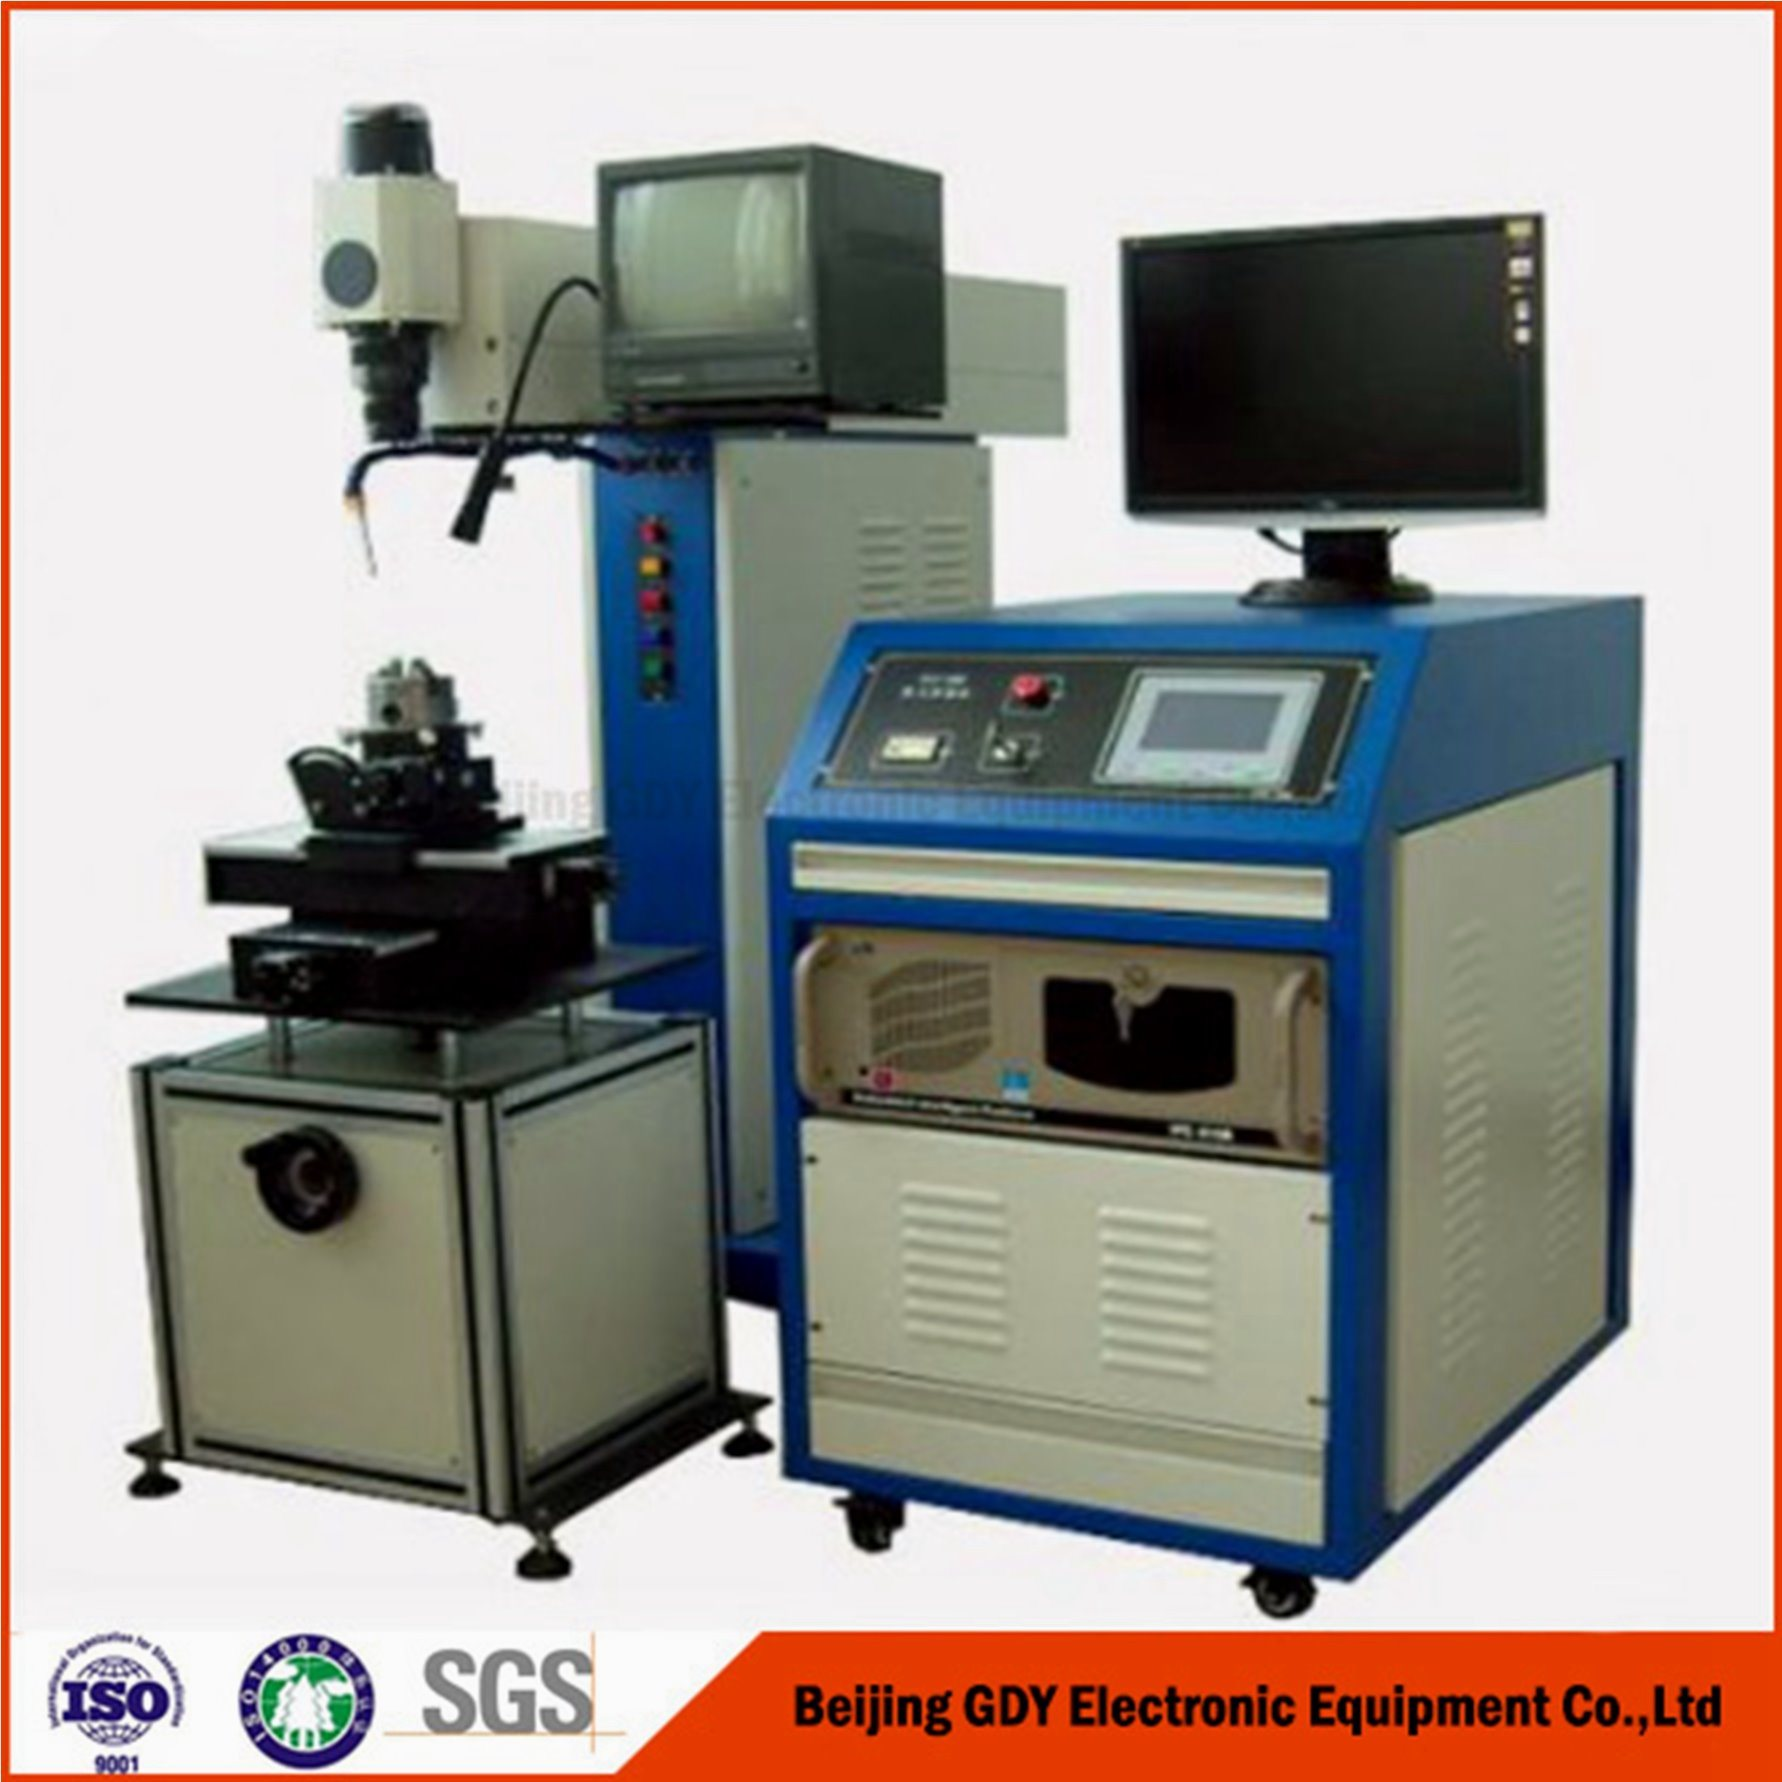 0.025mm Thin Diaphragm Laser Machinery for Welding